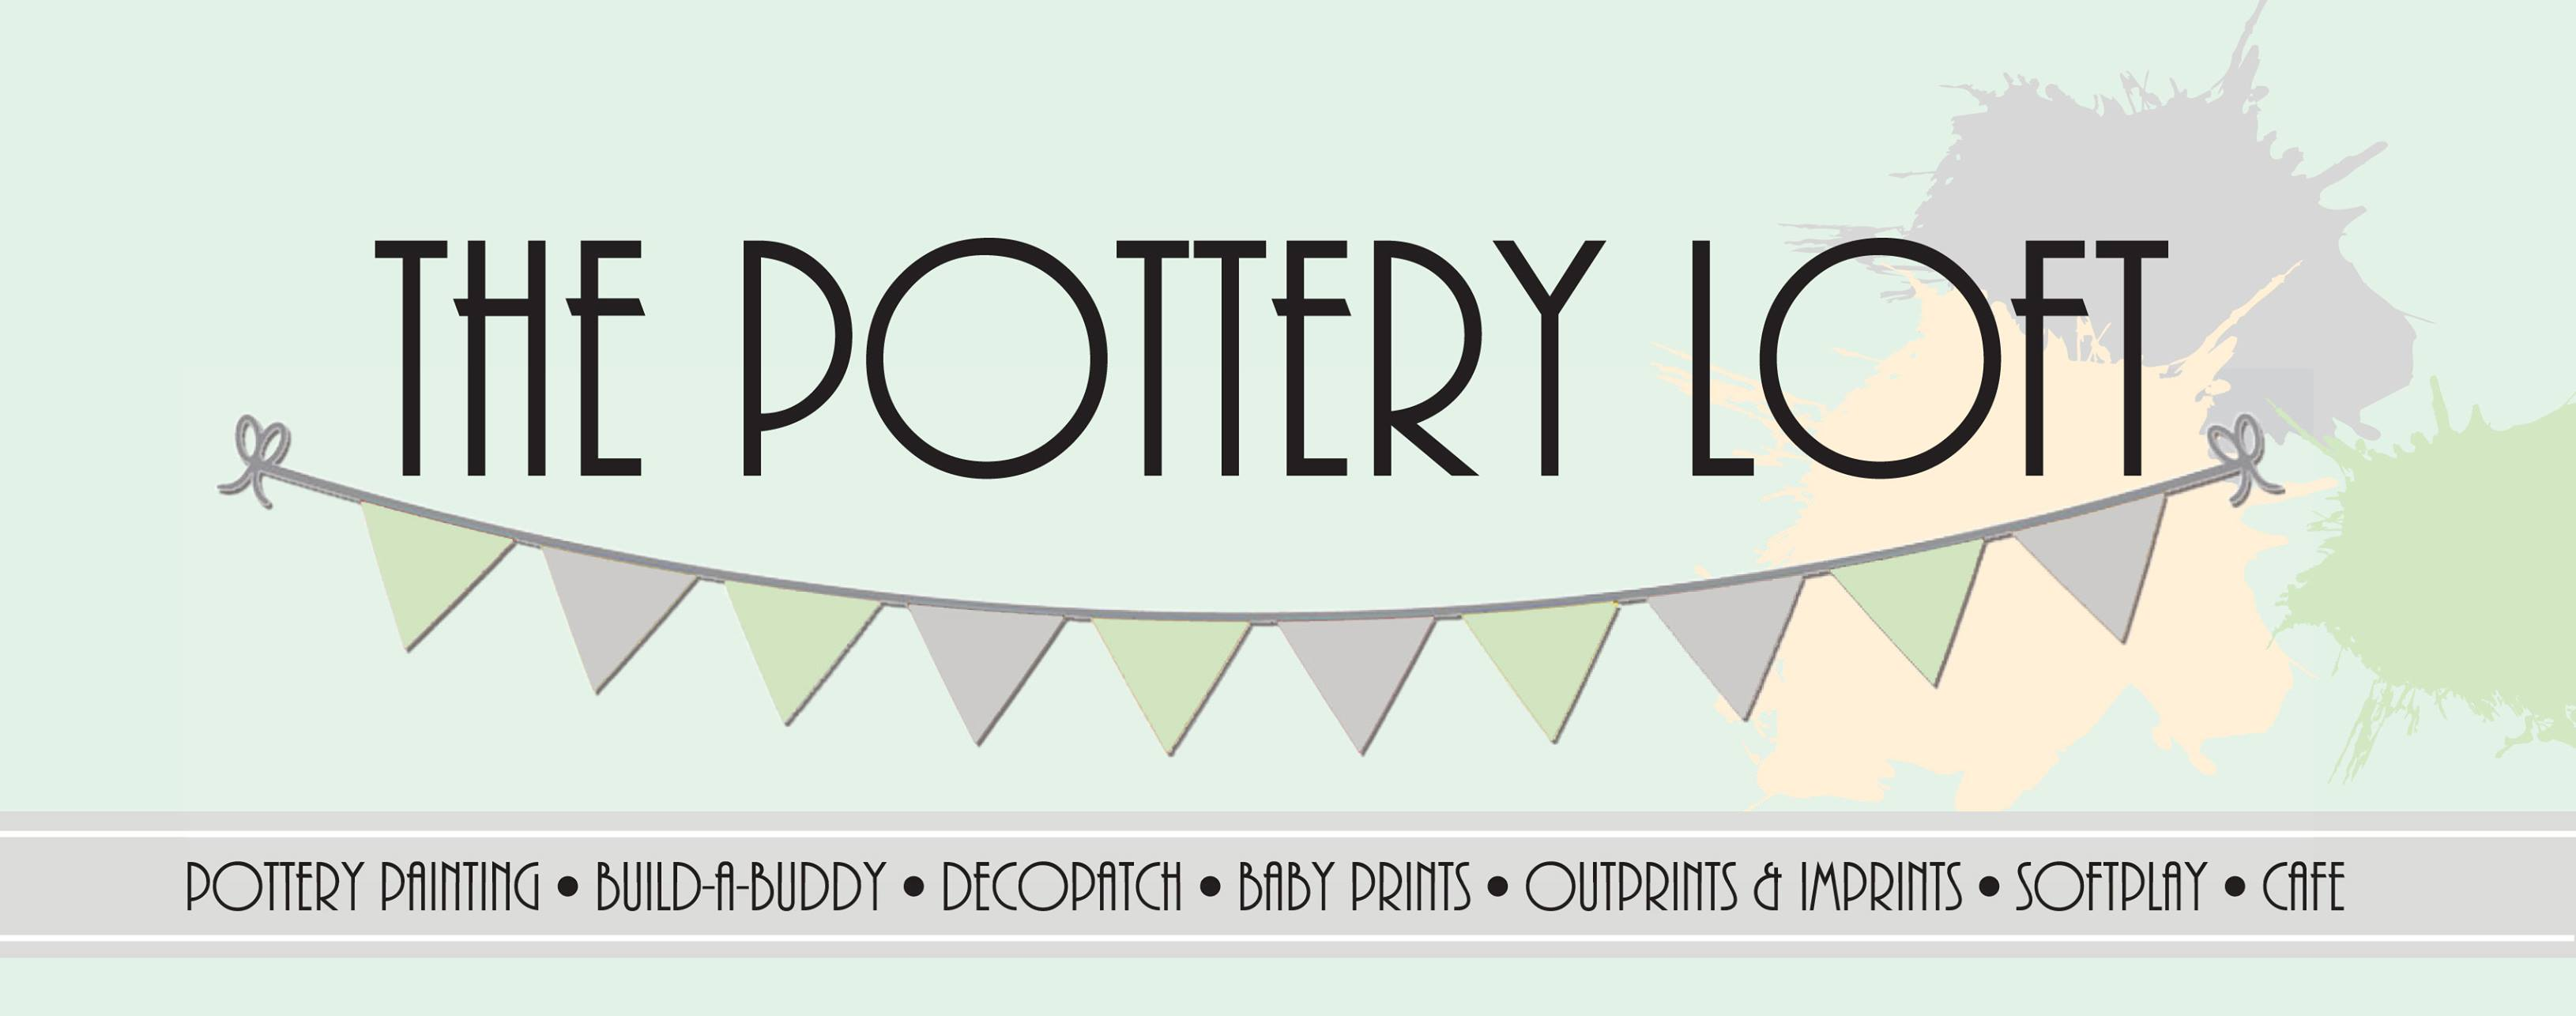 The Pottery Loft, Billingham